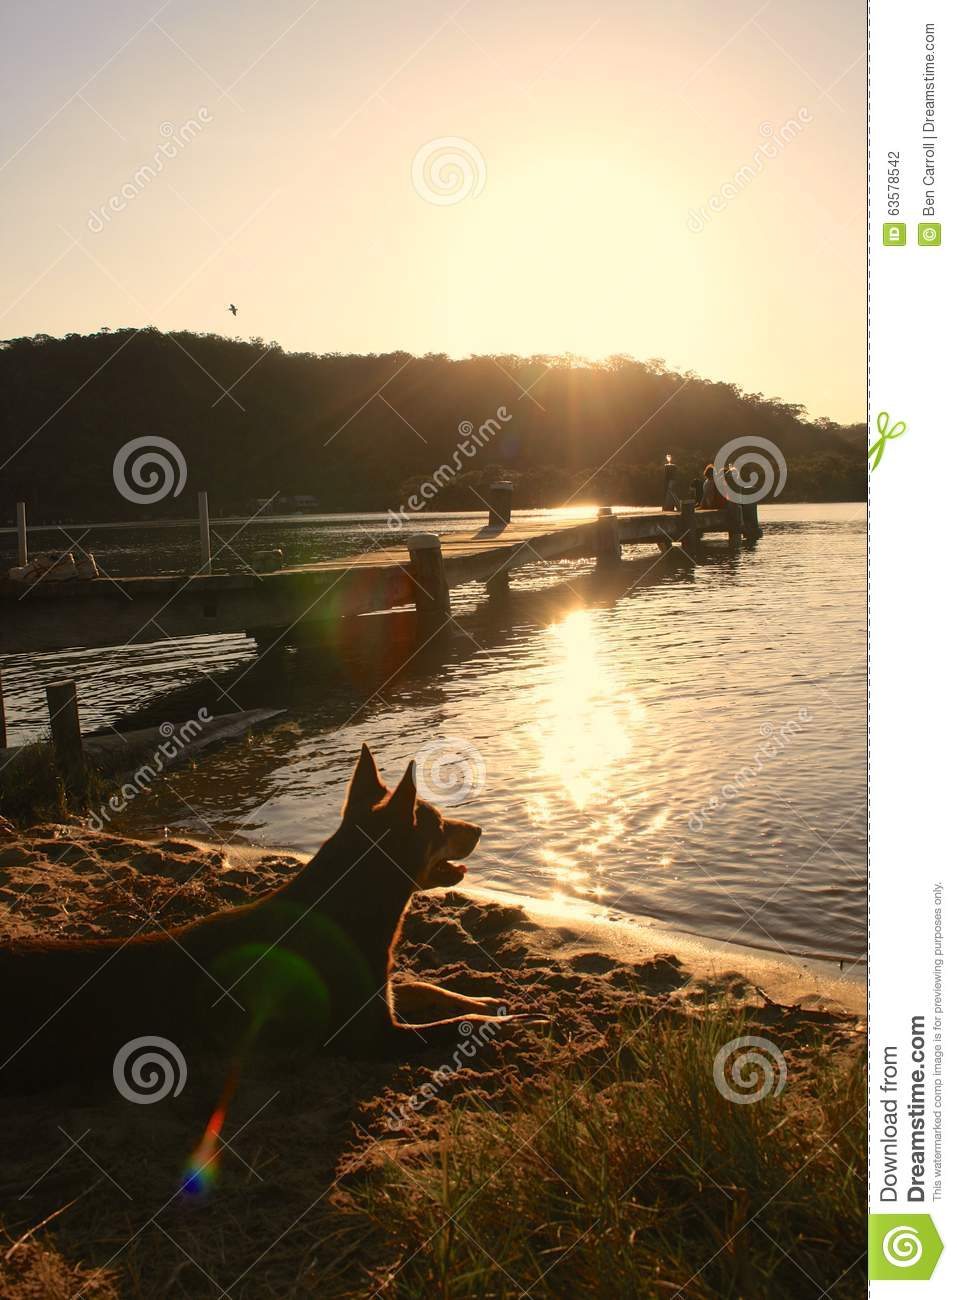 Brown Kelpie on Beach staring into distance under sunset